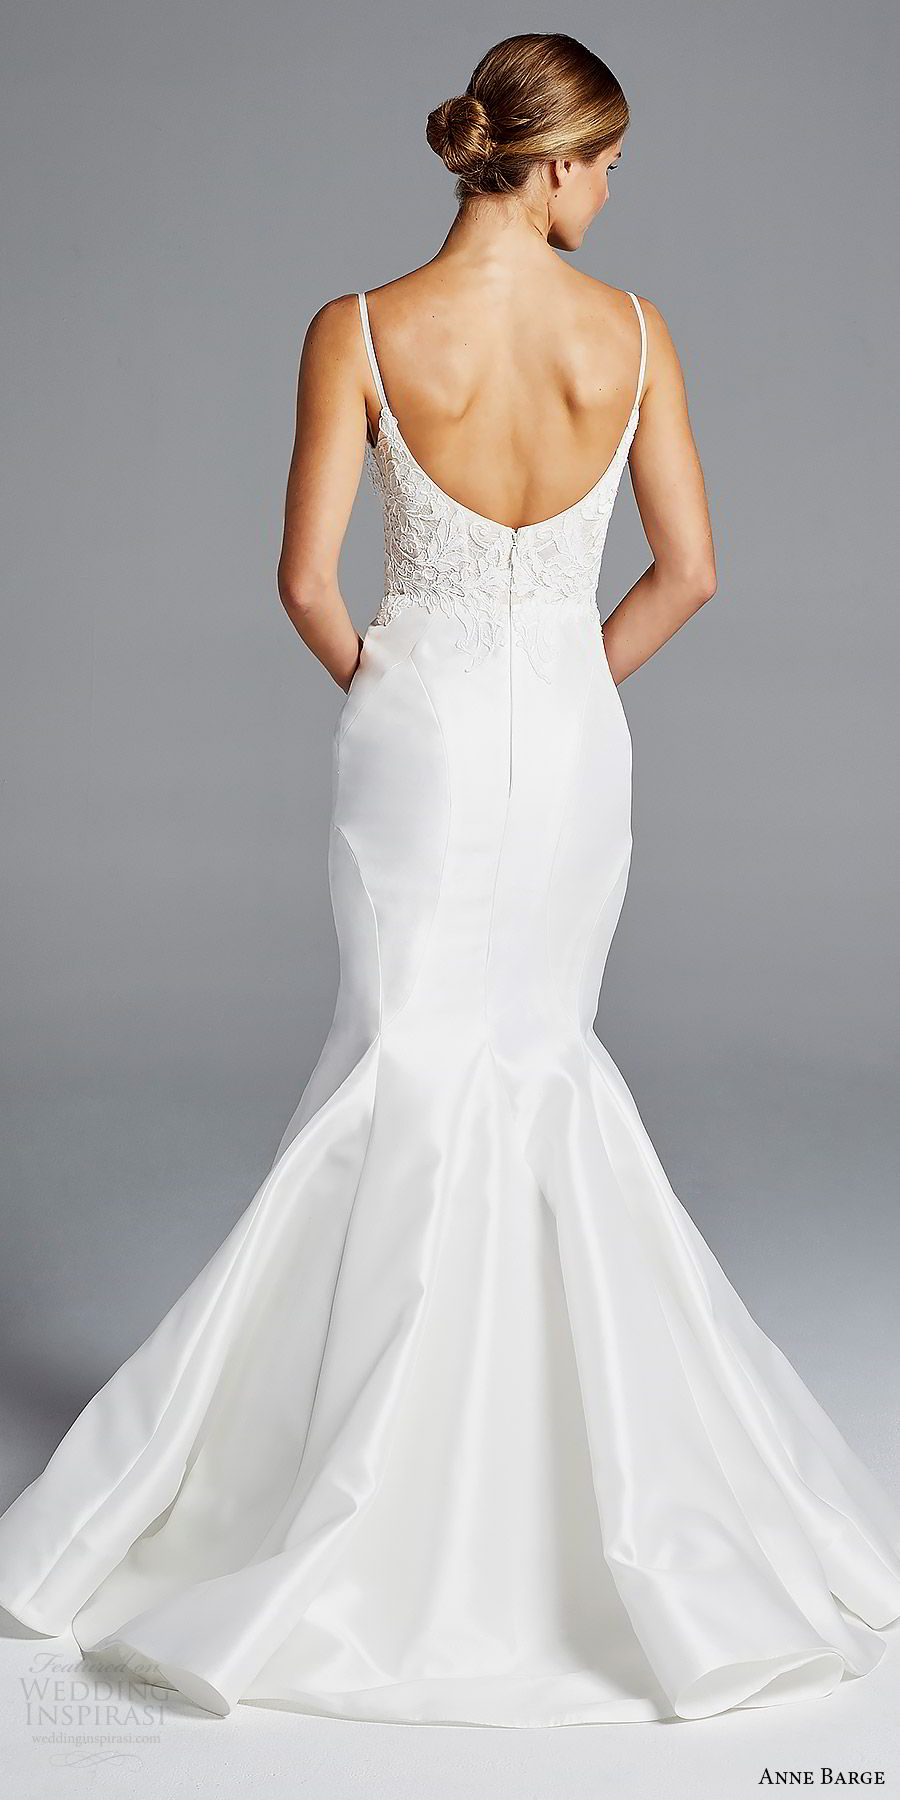 anne barge bridal spring 2019 sleeveless straps sweetheart lace bodice mermaid wedding dress (iman) bv scoop back modern elegant